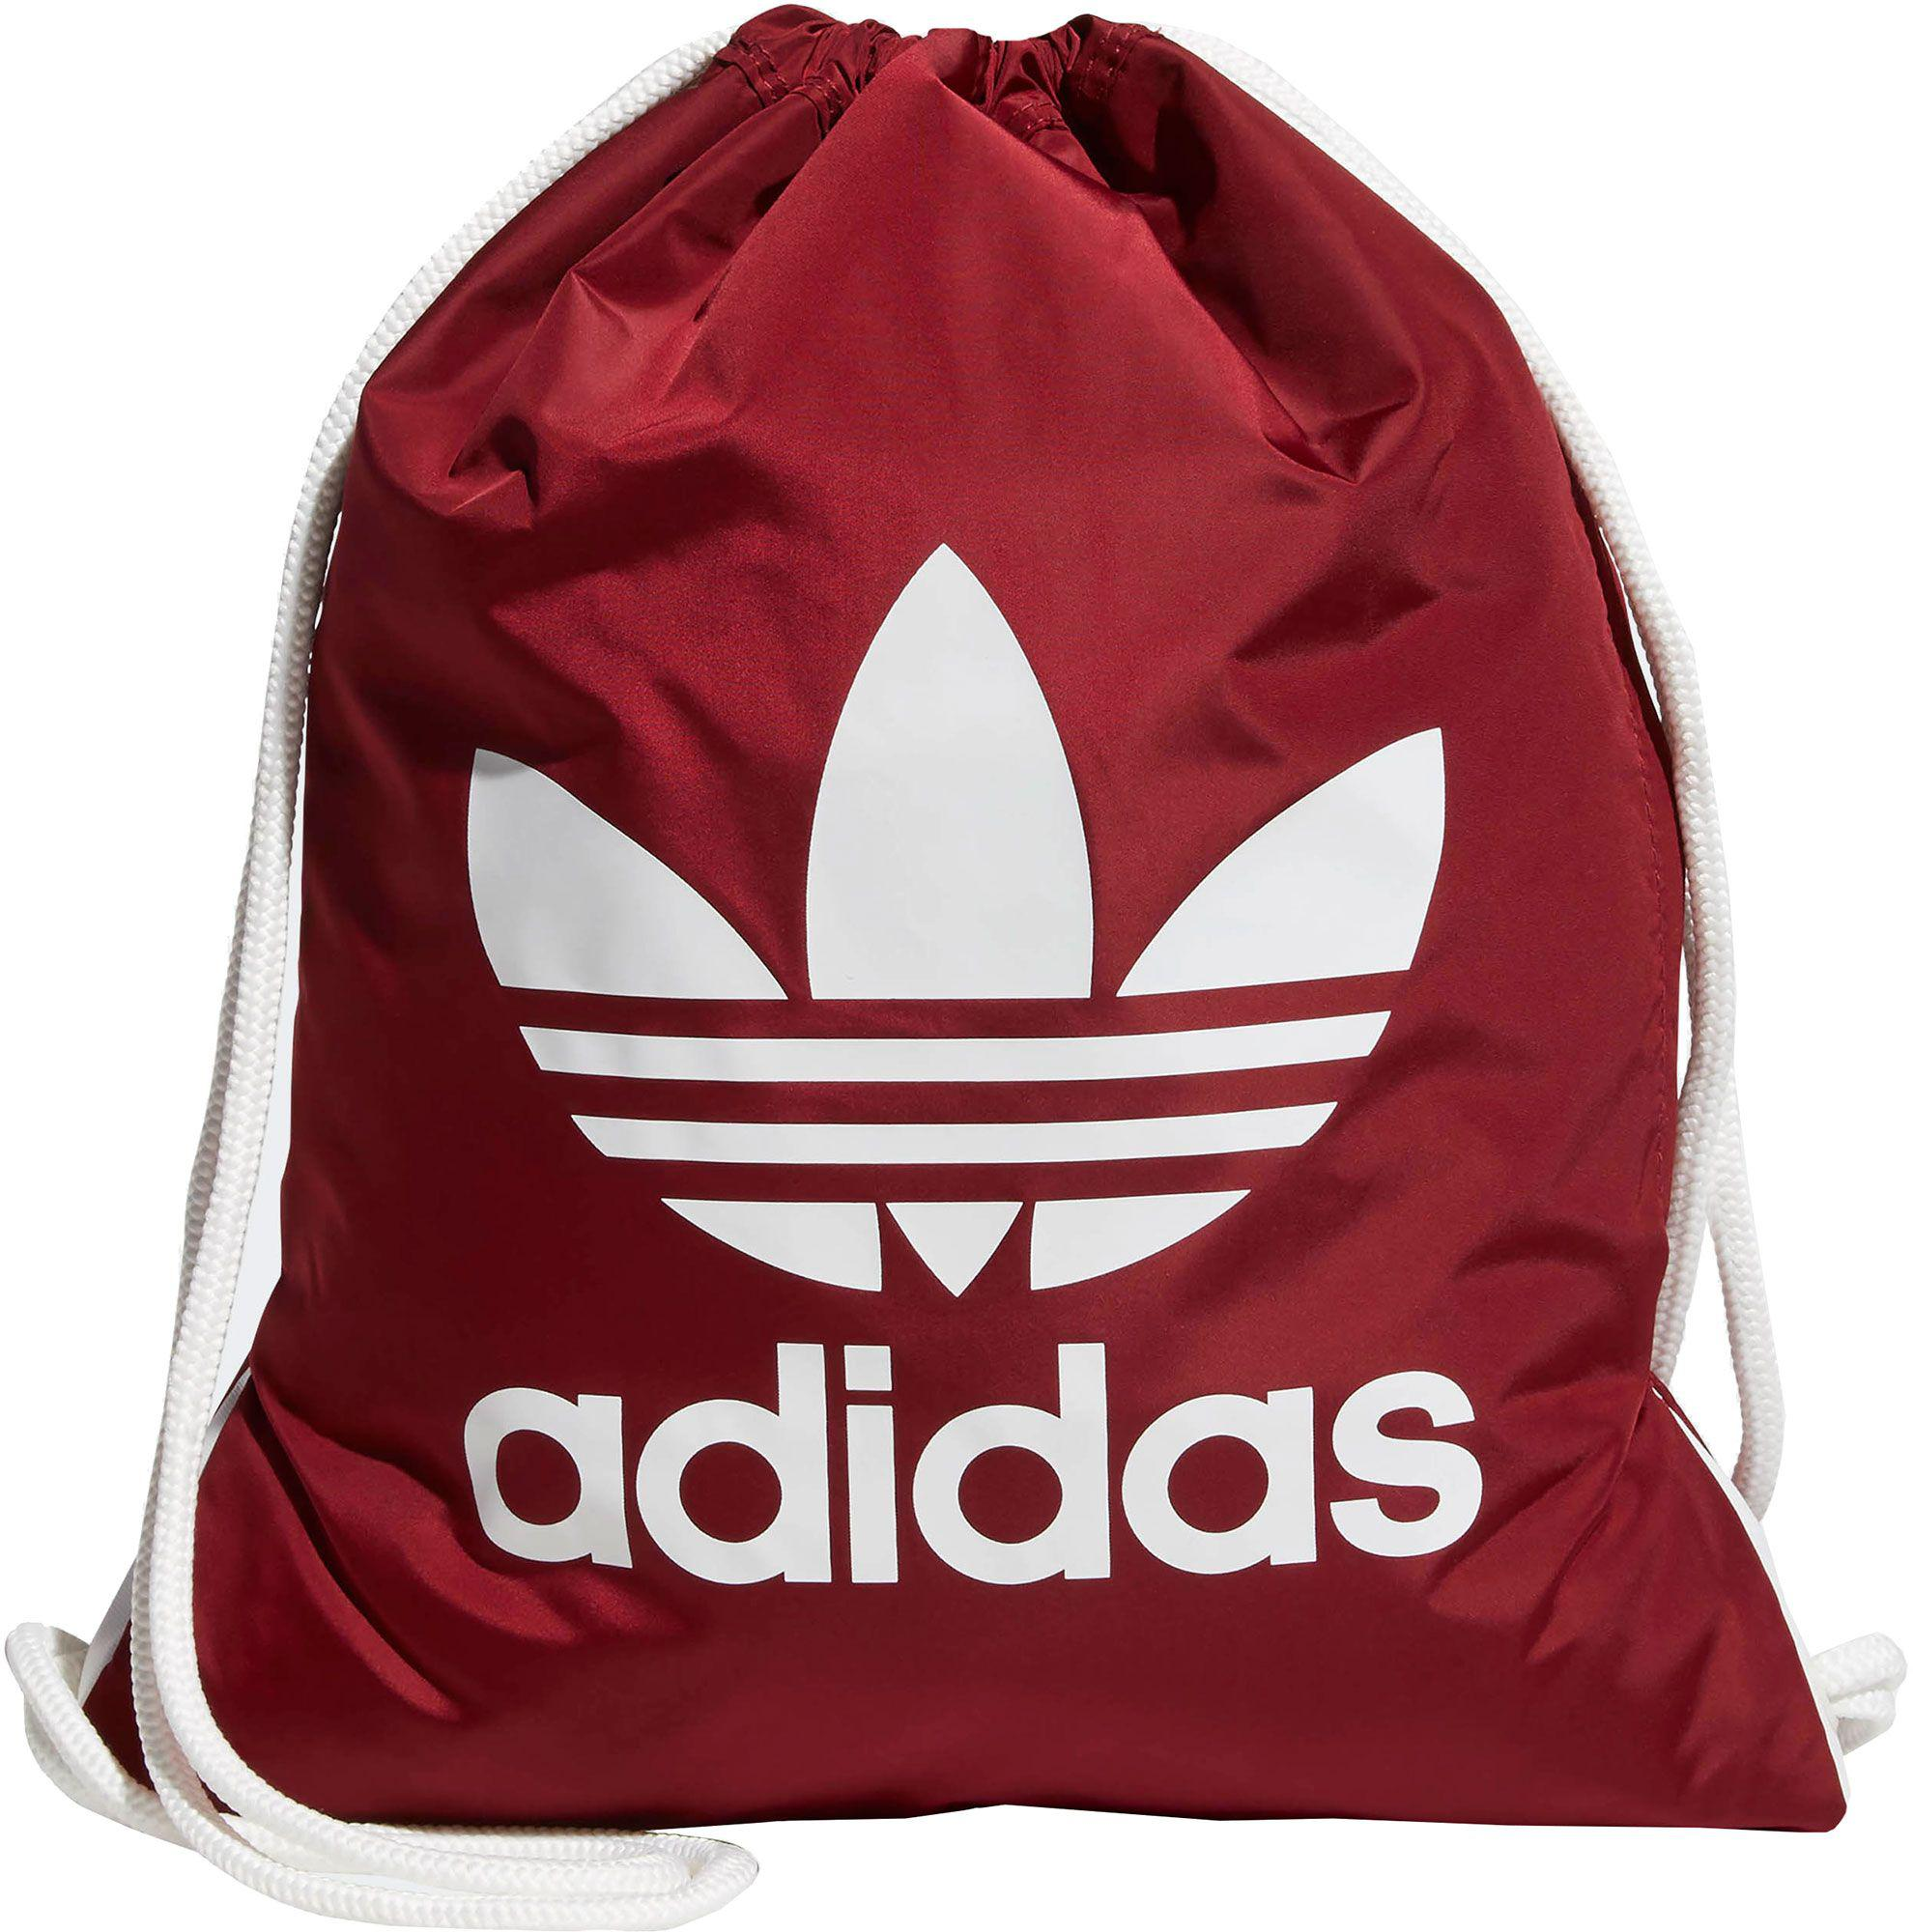 Adidas - Red Originals Trefoil Sackpack for Men - Lyst. View fullscreen ce07d46ceee26